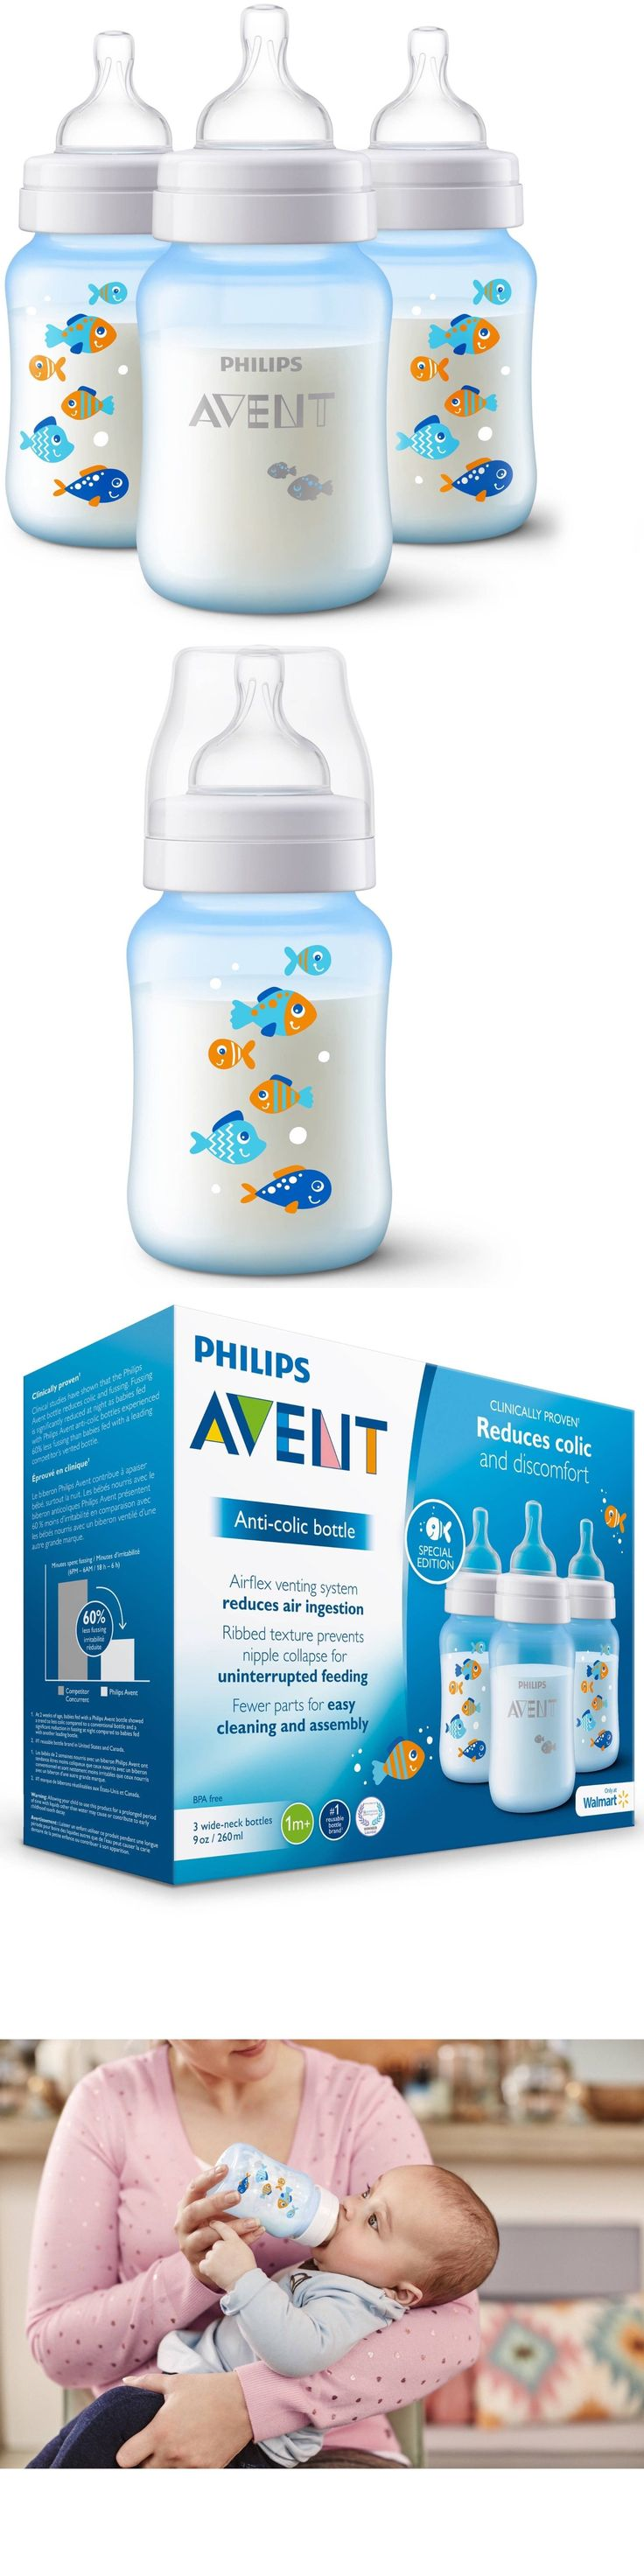 Baby Bottles 20402: Philips Avent Anti-Colic Fish Design 9Oz Baby Bottles, Bpa-Free, 3-Pack -> BUY IT NOW ONLY: $39.97 on eBay!